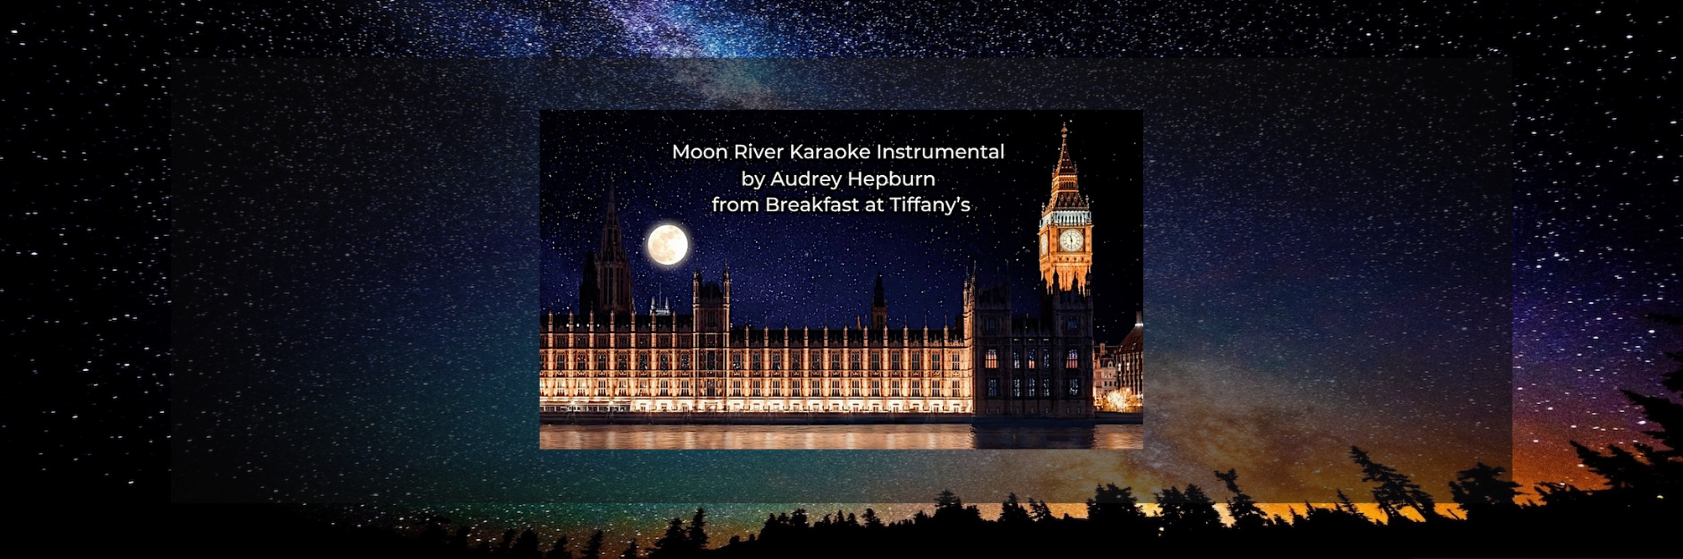 Moon River Karaoke by Audrey Hepburn Female Key Instrumental from Breakfast at Tiffany's